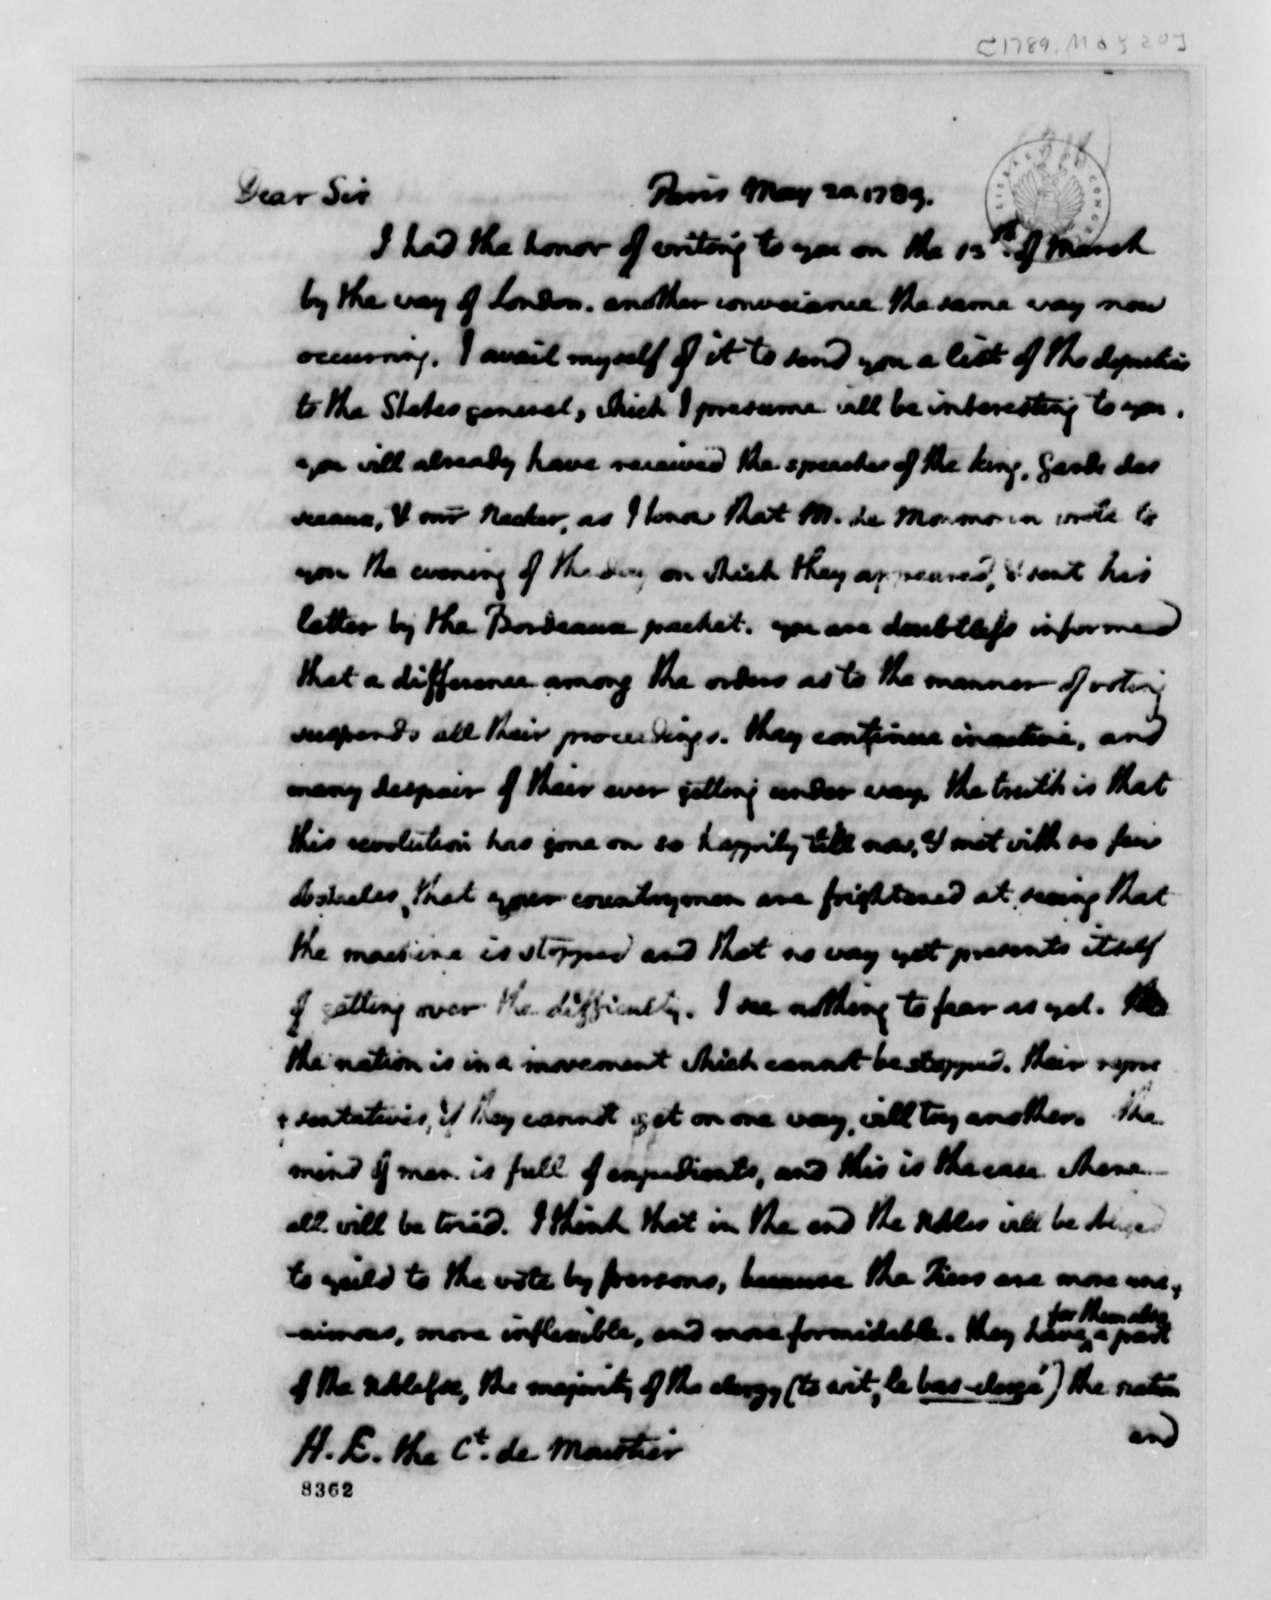 Thomas Jefferson to Count de Moustier, May 20, 1789